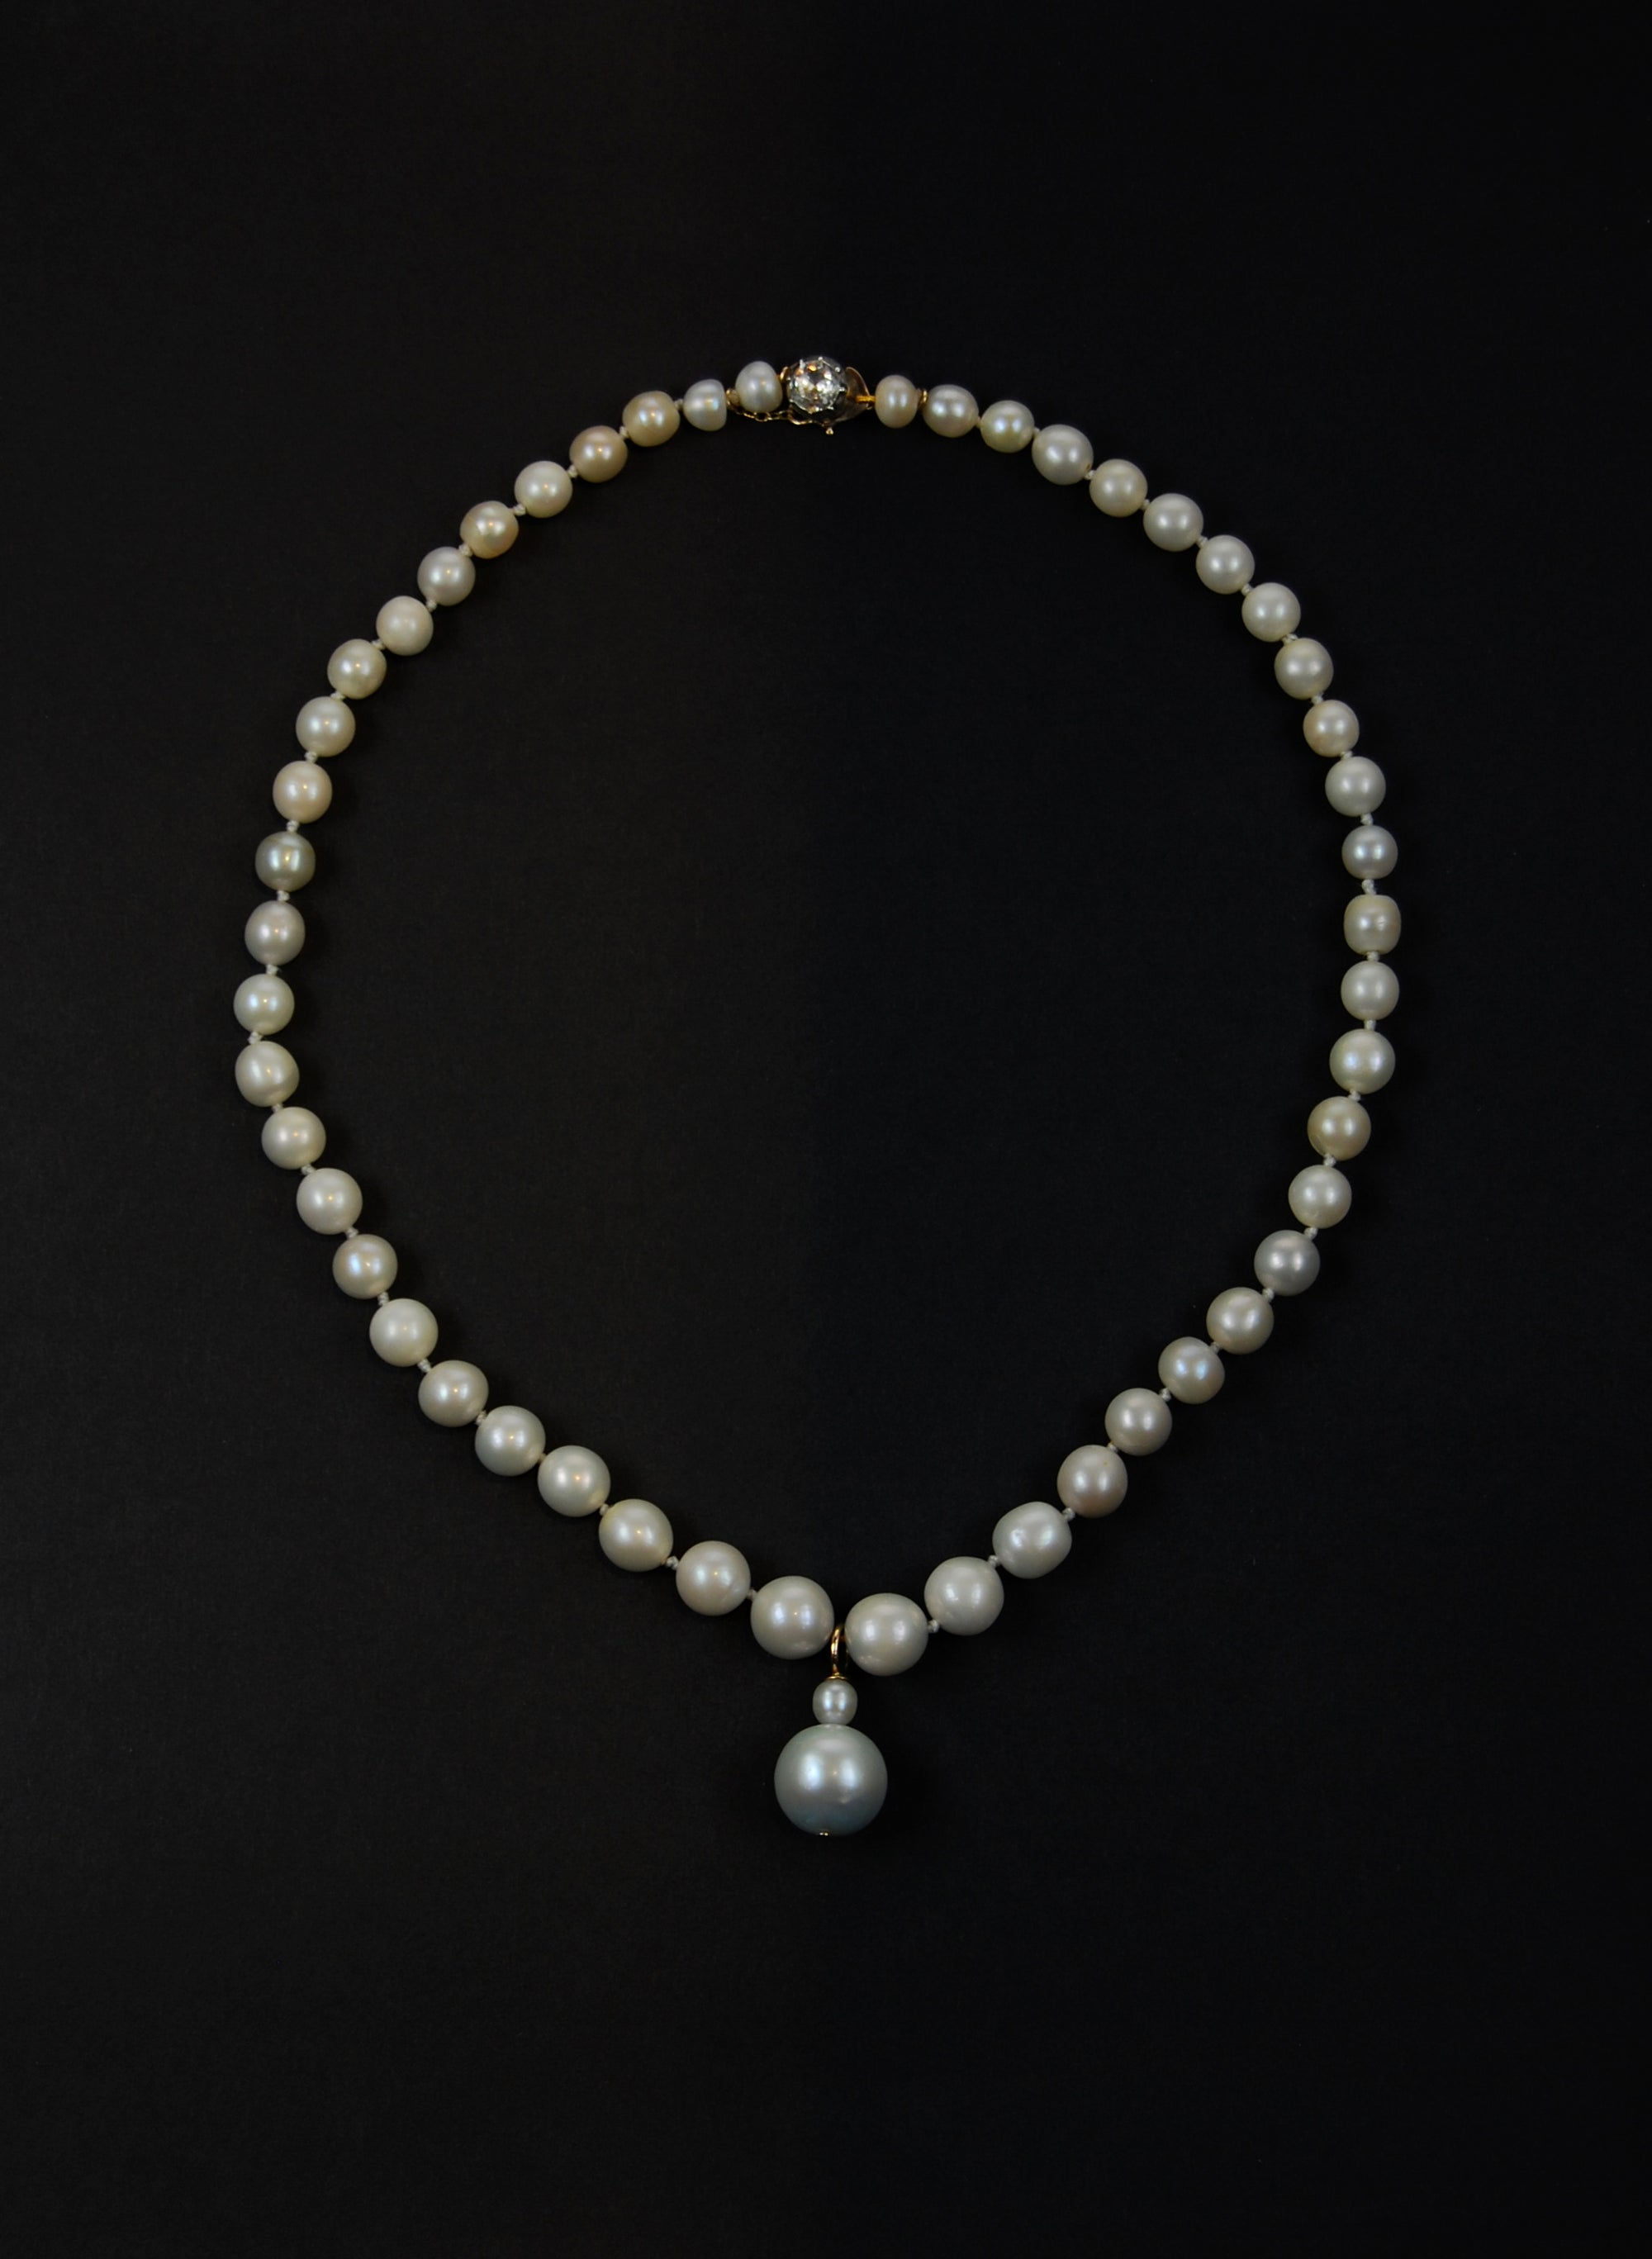 Become a connoisseur of natural pearls in 10 easy steps: Part 1